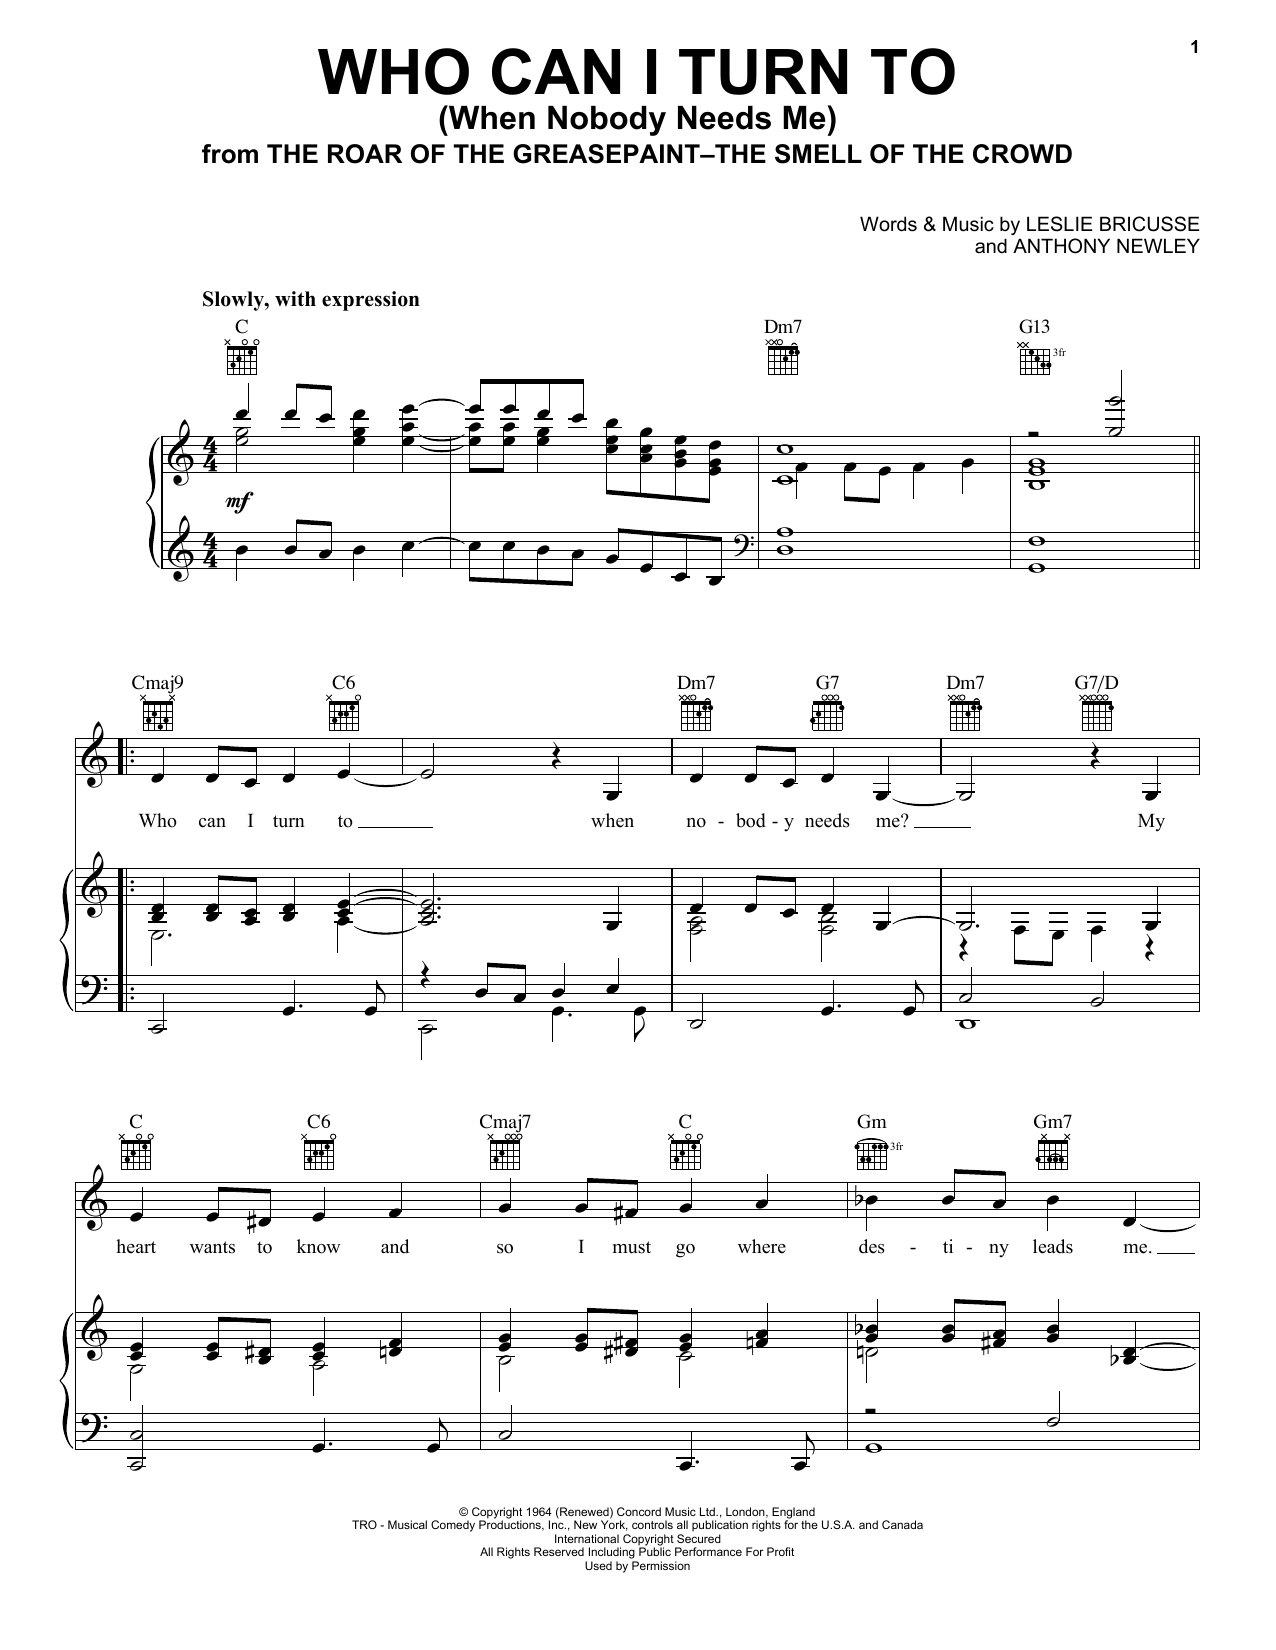 Who Can I Turn To (When Nobody Needs Me) Sheet Music